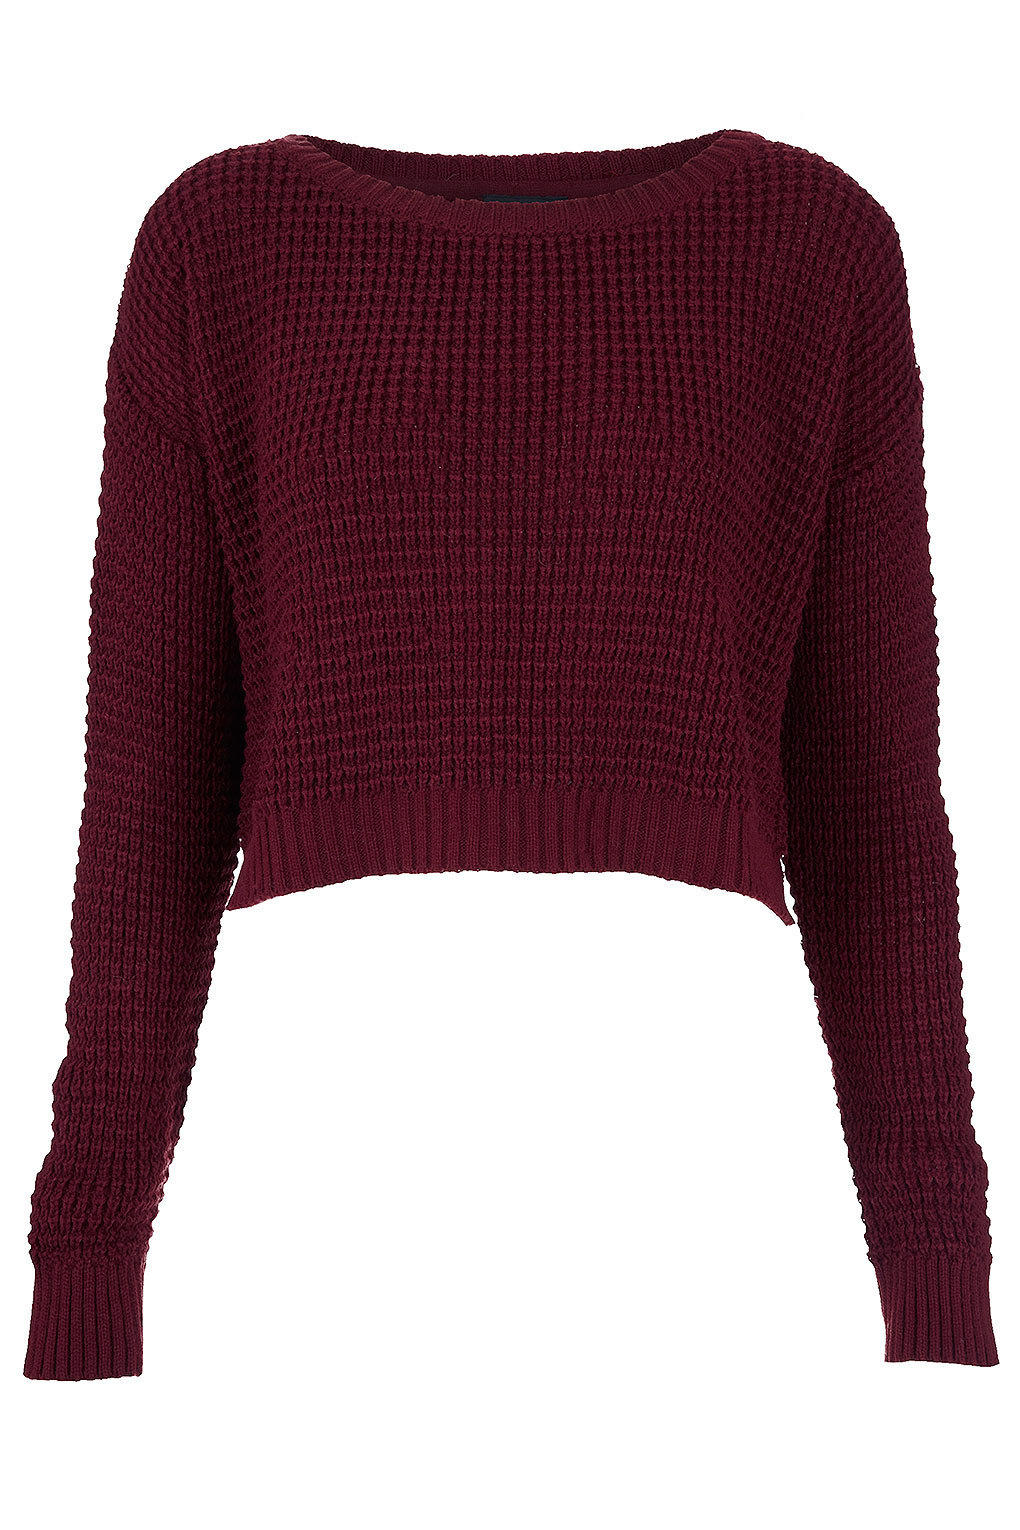 Knitted Textured Crop Jumper Knitwear From Topshop Epic